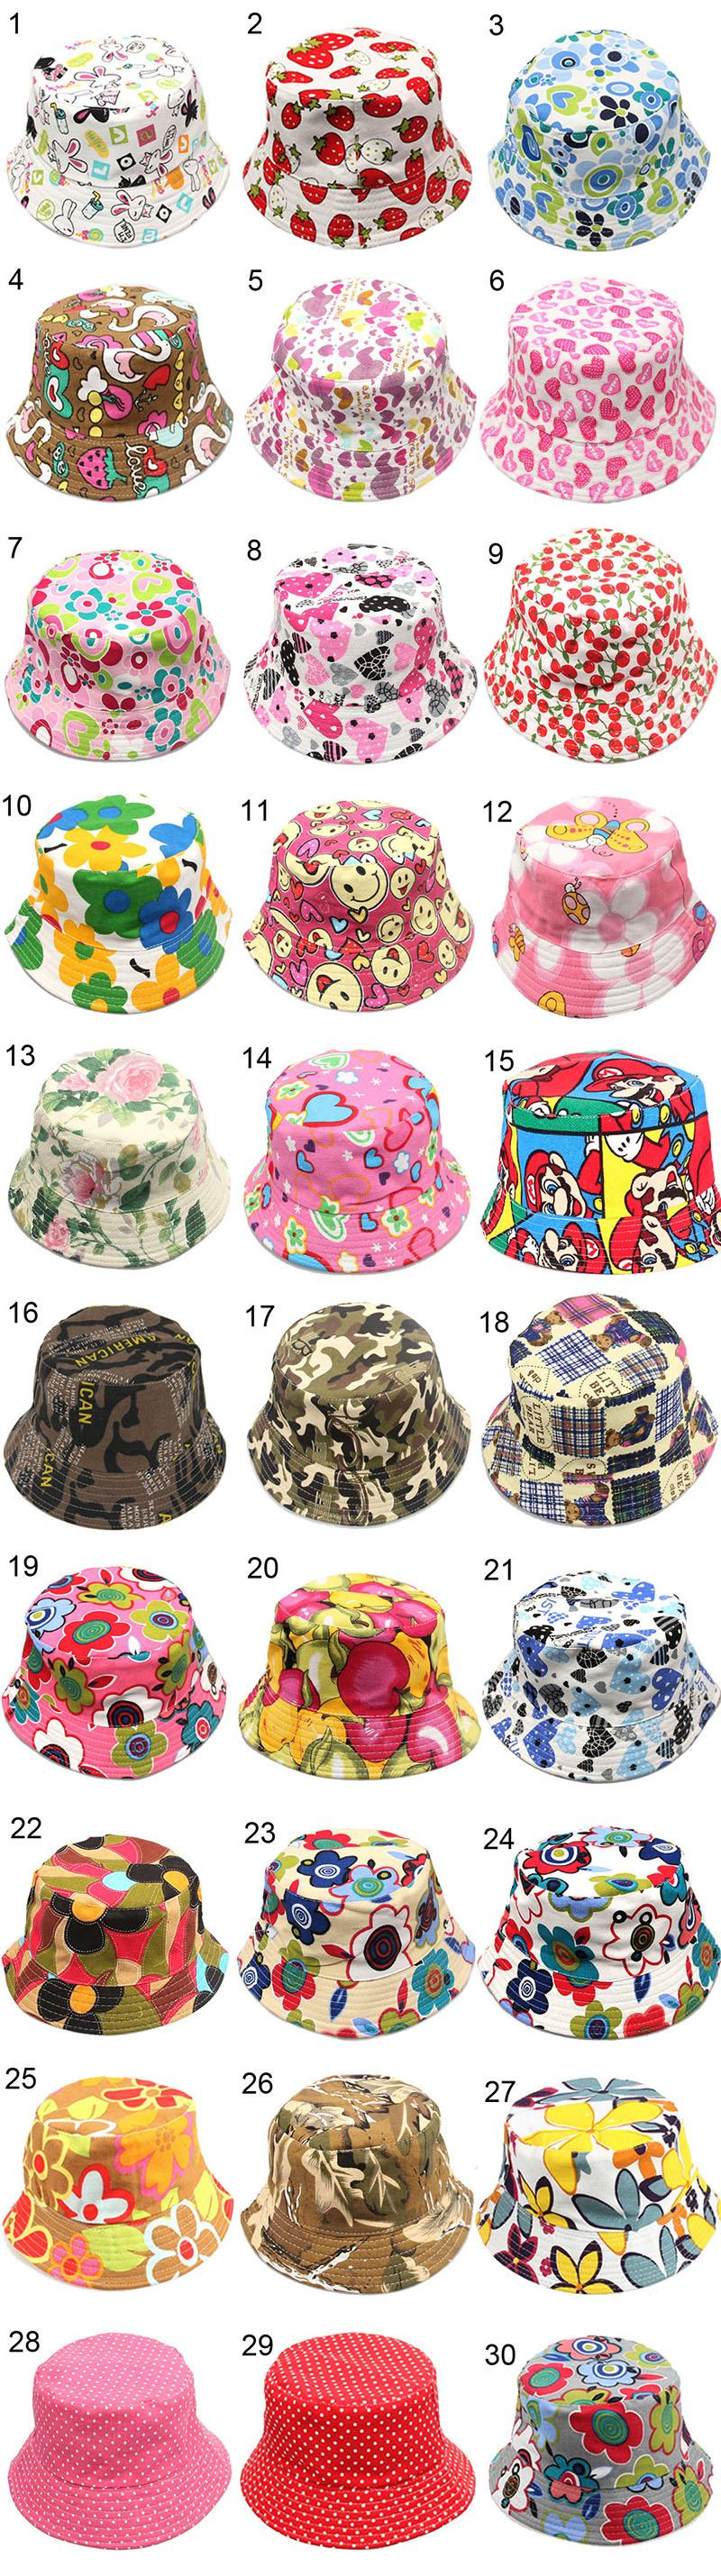 Children Bucket Hat 30 Colors Casual Flowers Printed Basin Canvas Topee Kids Hats Baby Beanie Caps 2-5T